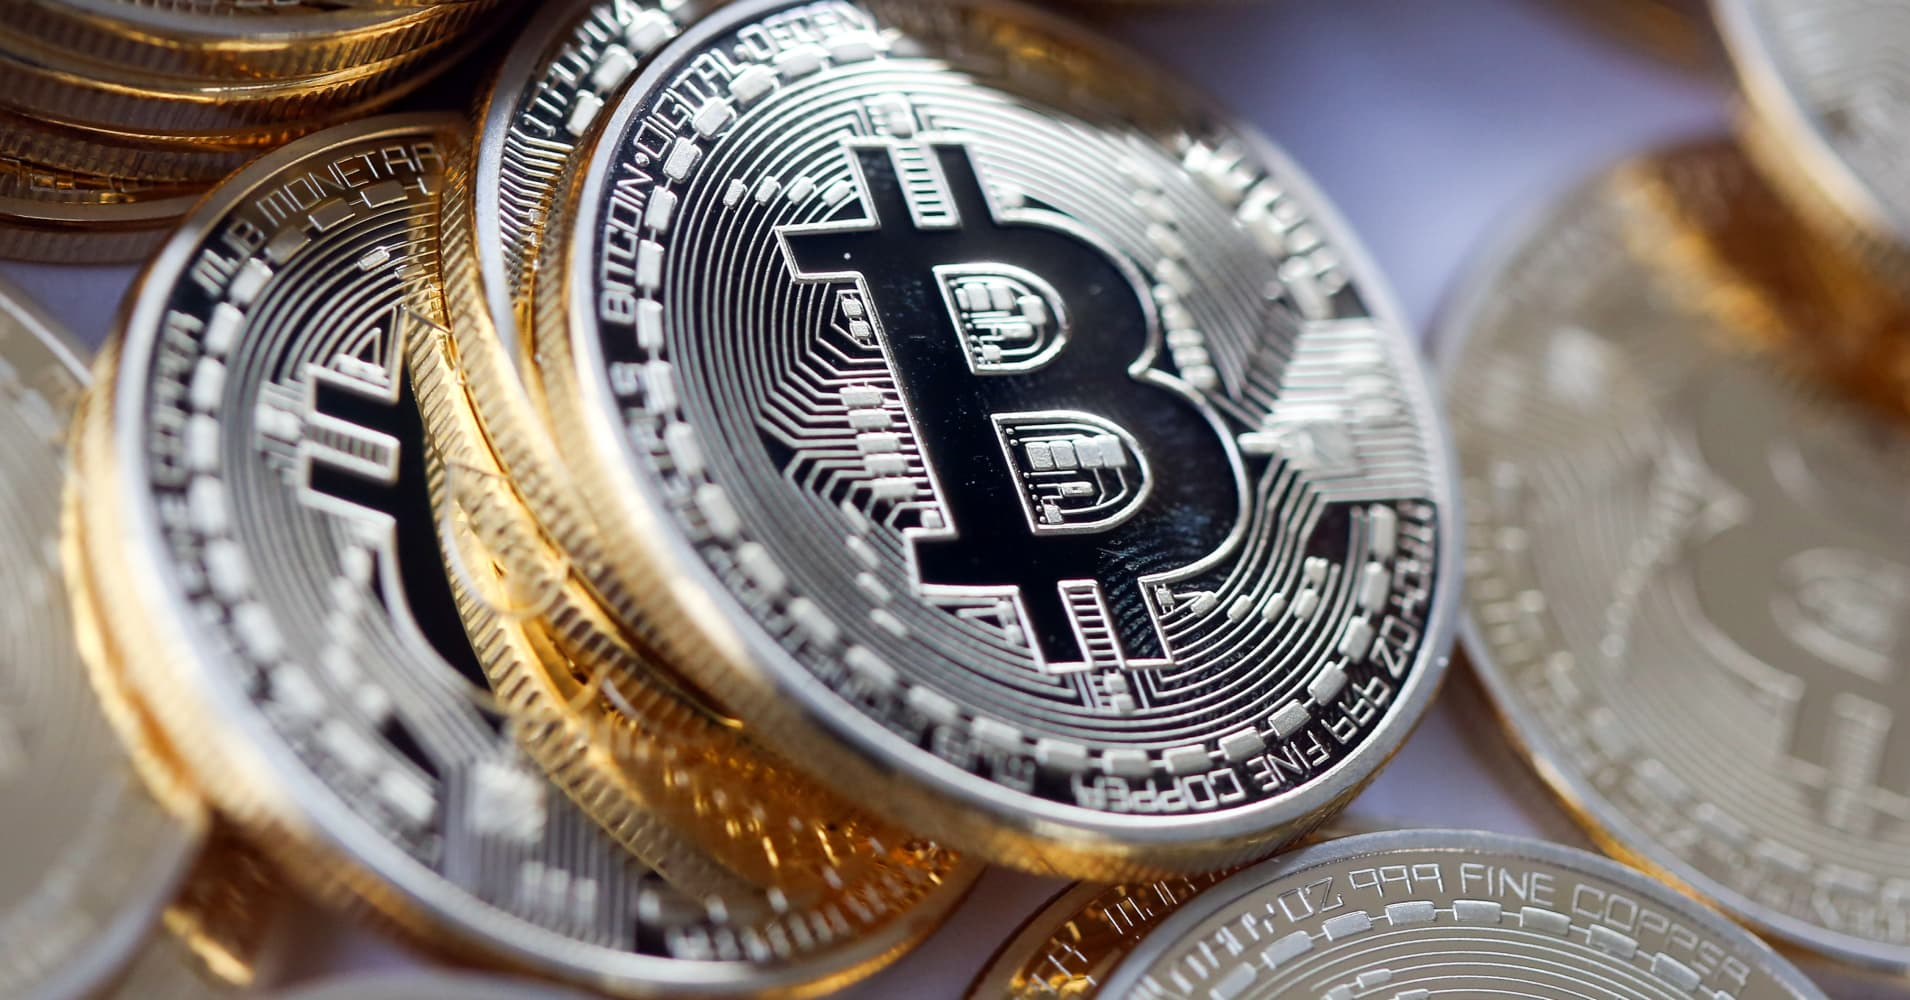 Bitcoin hits $1600 for the first time and one investor says it could rally to $4000 in a few months - CNBC